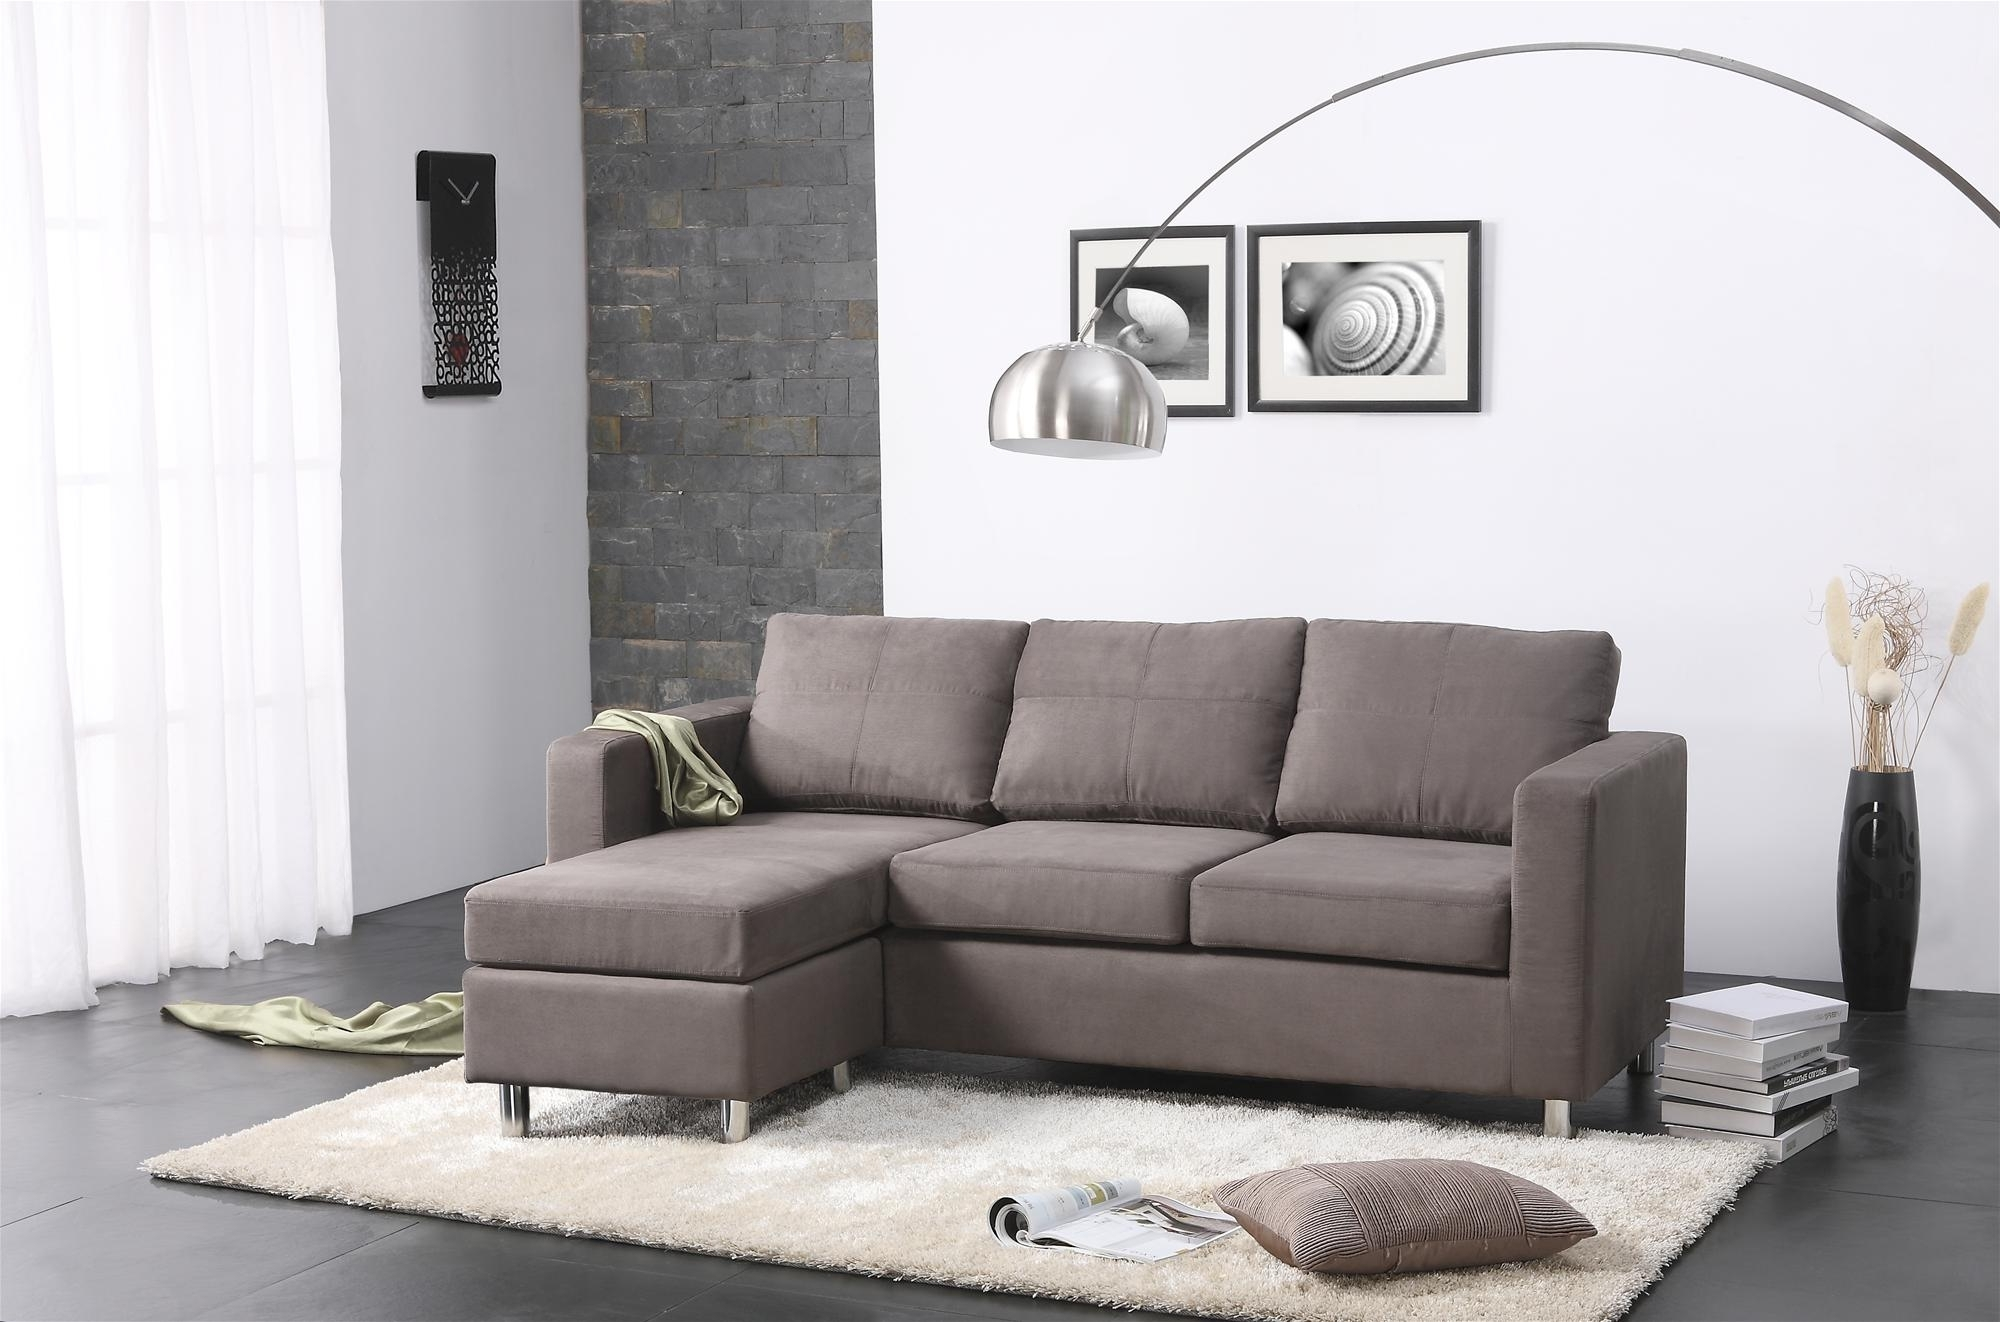 Most Recently Released Sectional Sofas For Small Areas Regarding Fancy Sectional Sofa For Small Spaces 46 For Contemporary Sofa (View 7 of 15)